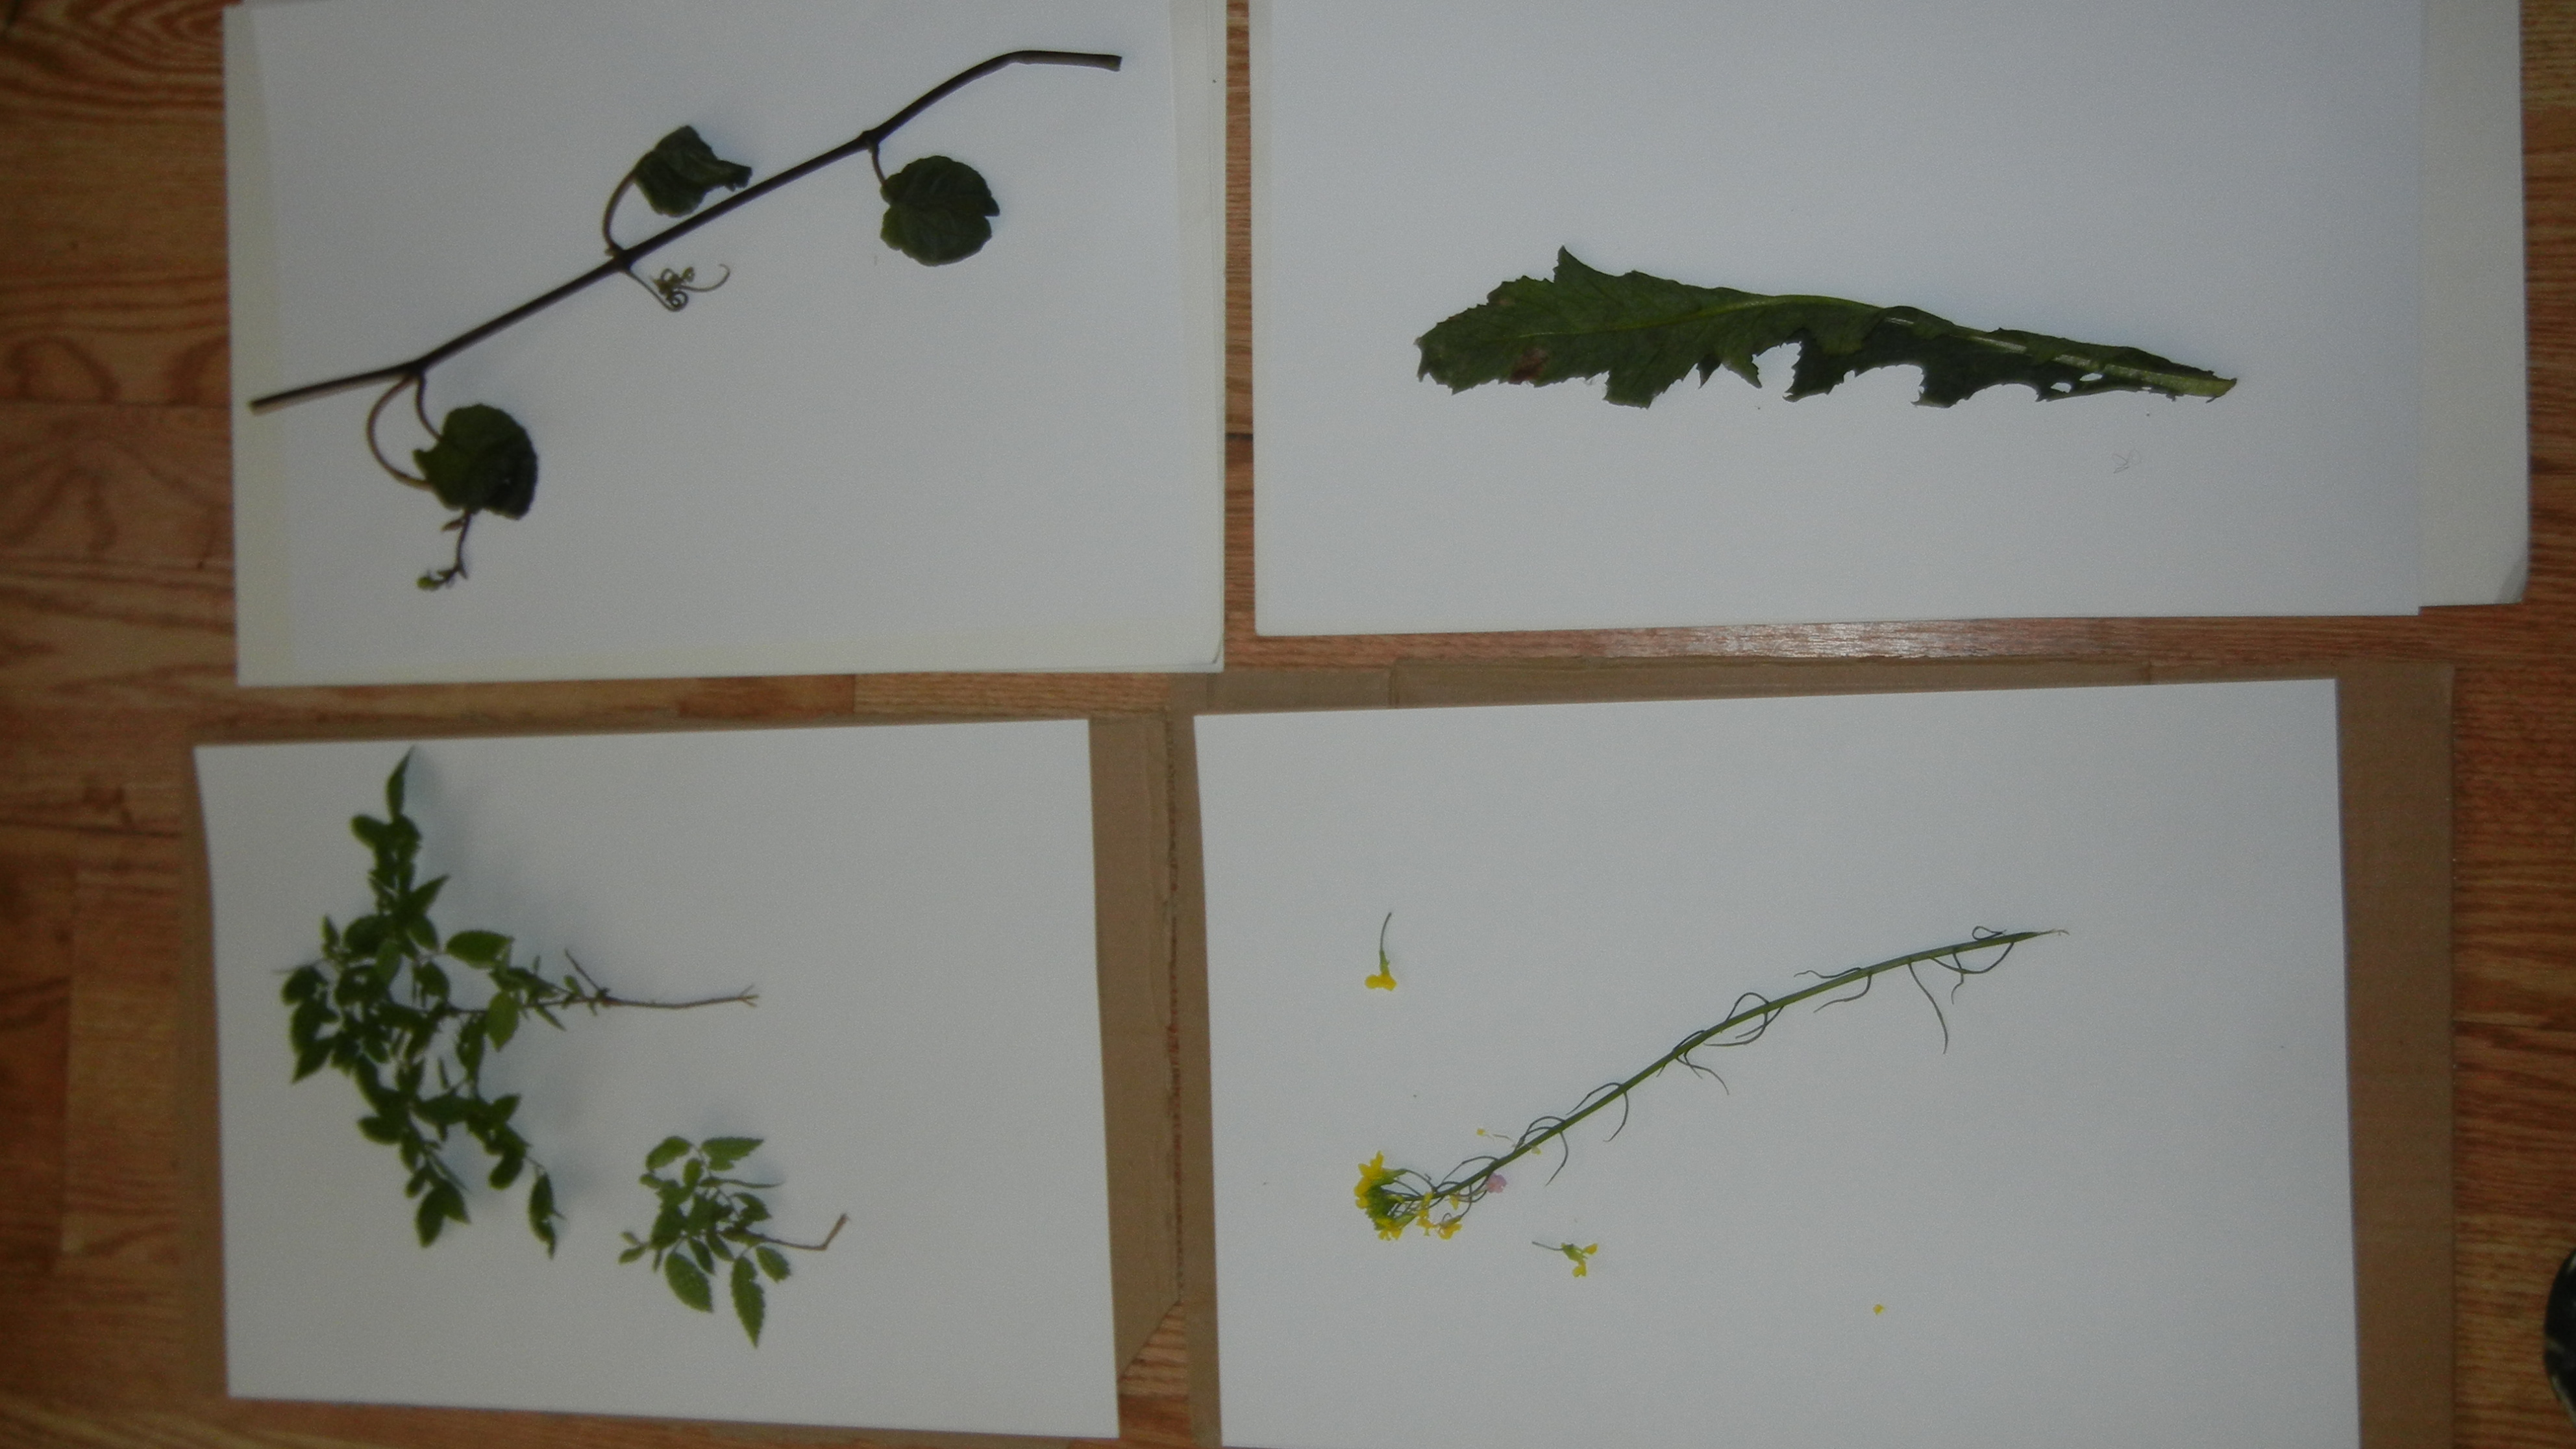 cream soda general this plant right down load dandelion northern europe think link might help seem doesnt identifier most looks like some deck identification botanists kind birch plants know anything expert from